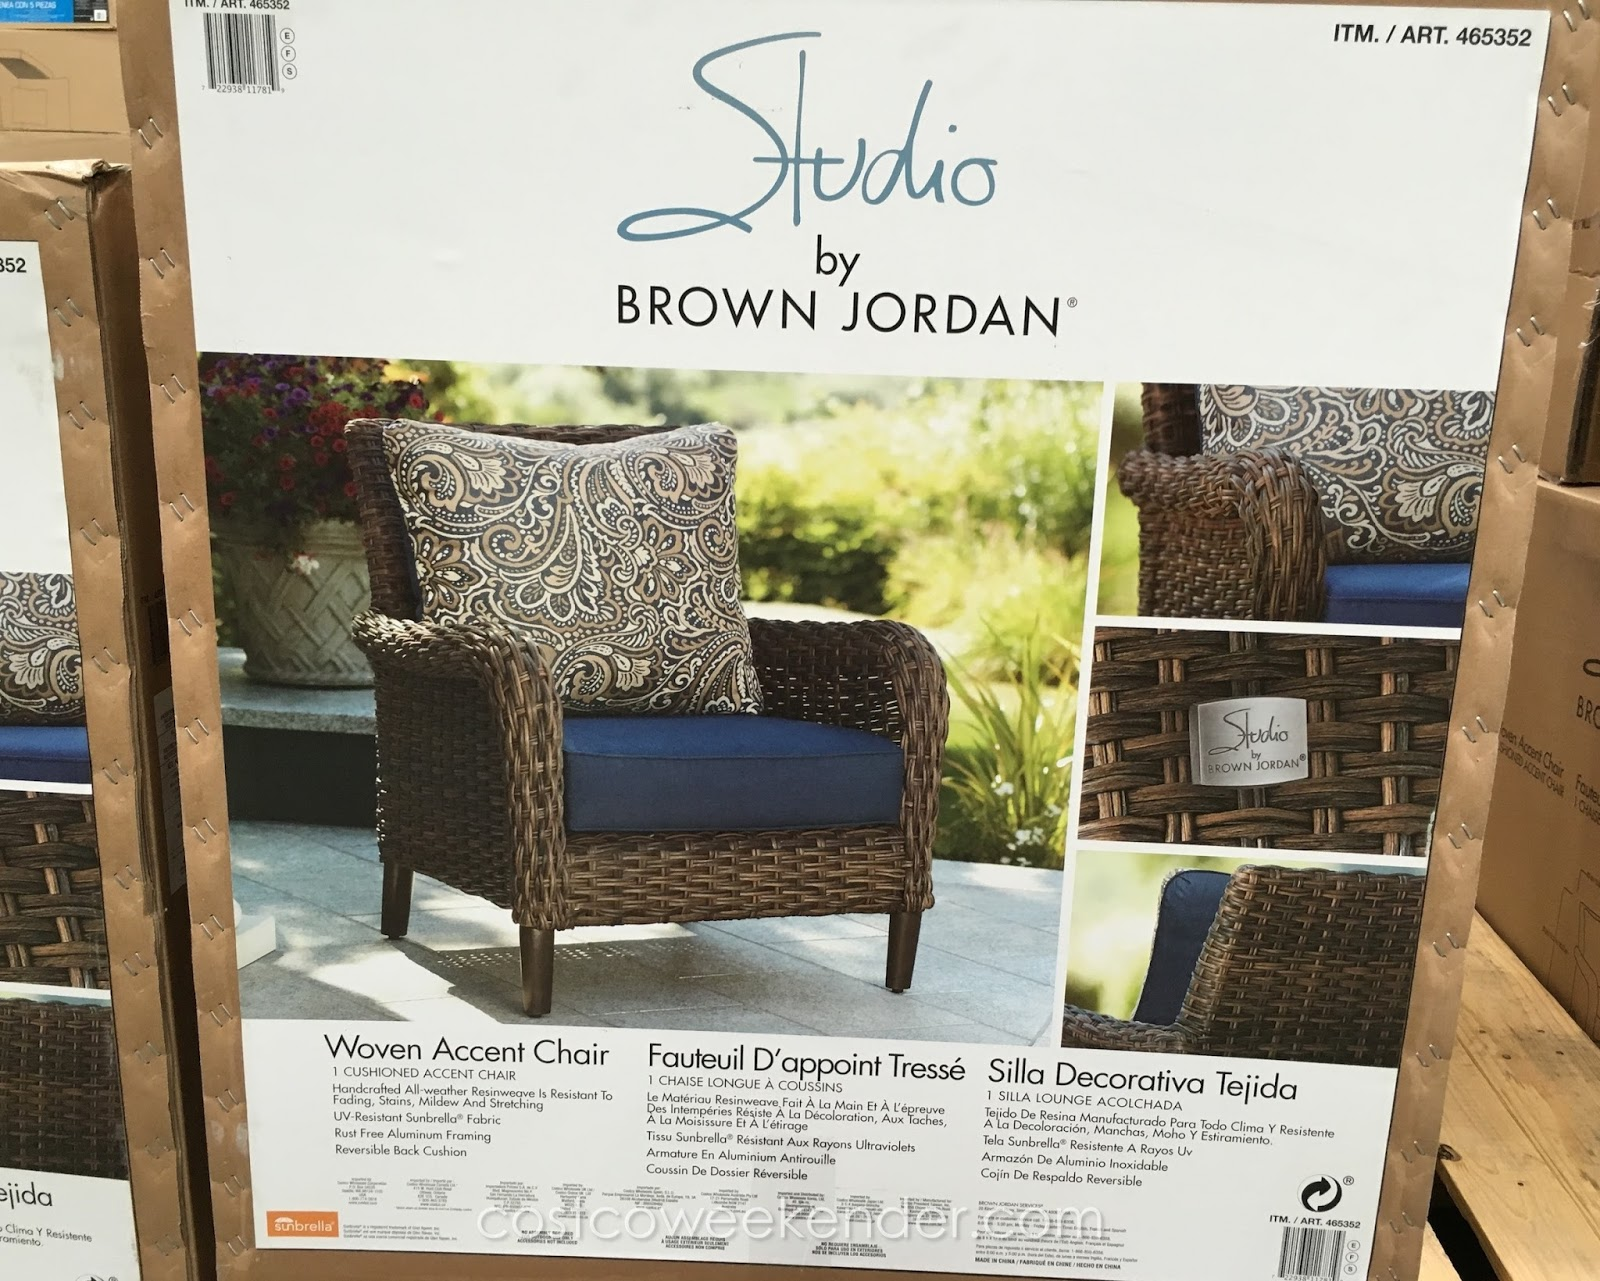 Pleasant Studio By Brown Jordan Woven Accent Chair Costco Weekender Pabps2019 Chair Design Images Pabps2019Com